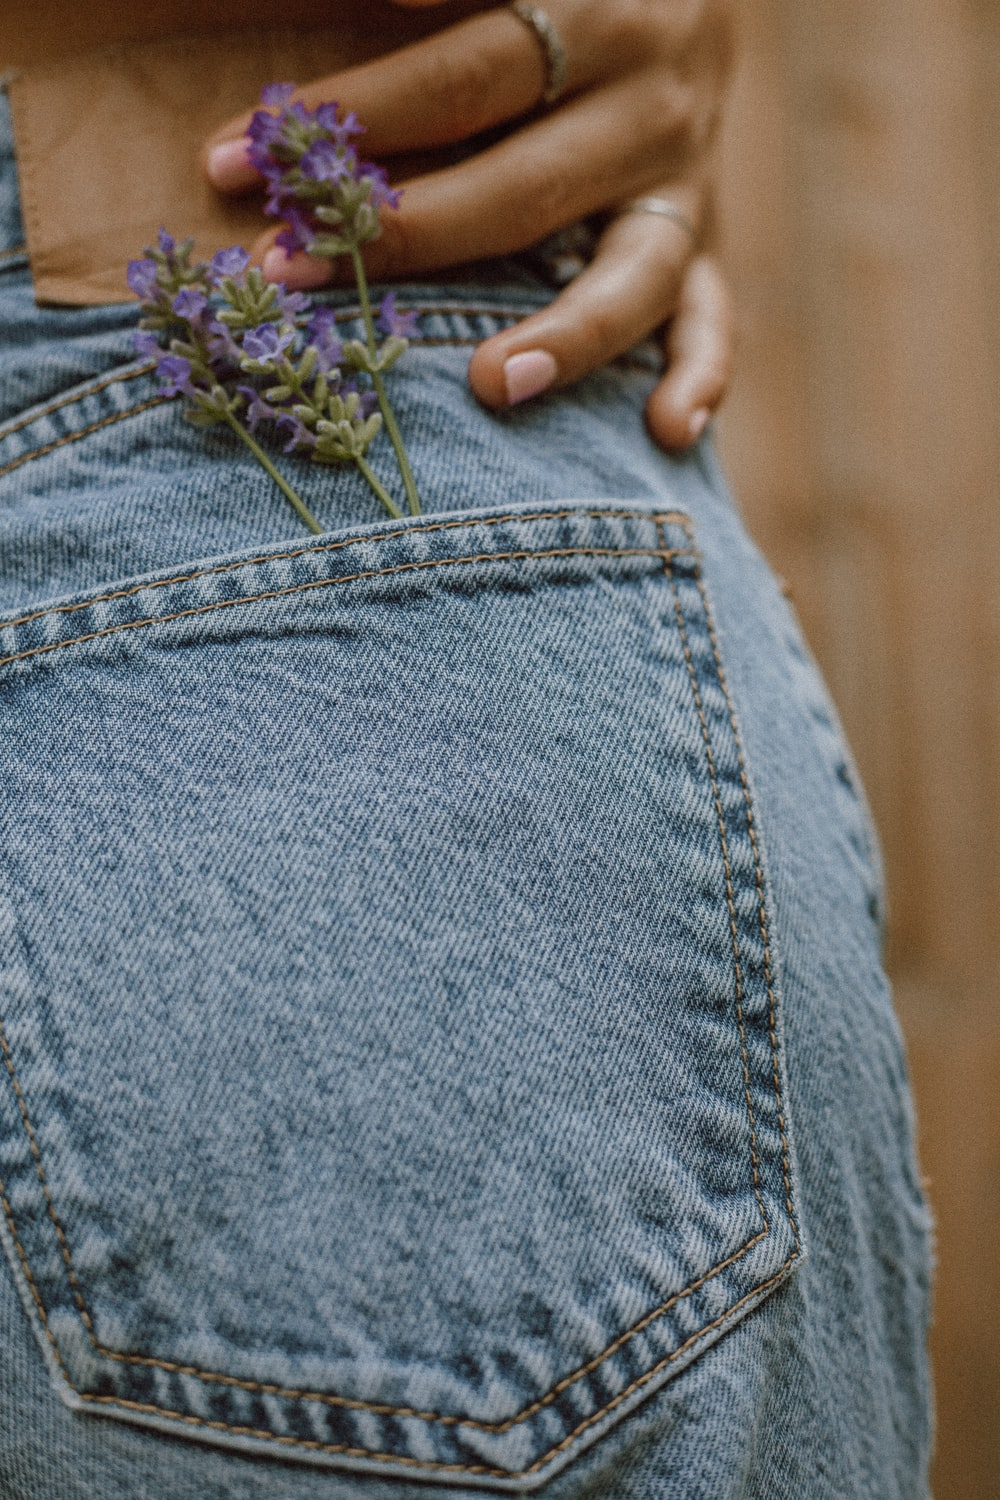 person in blue denim jeans